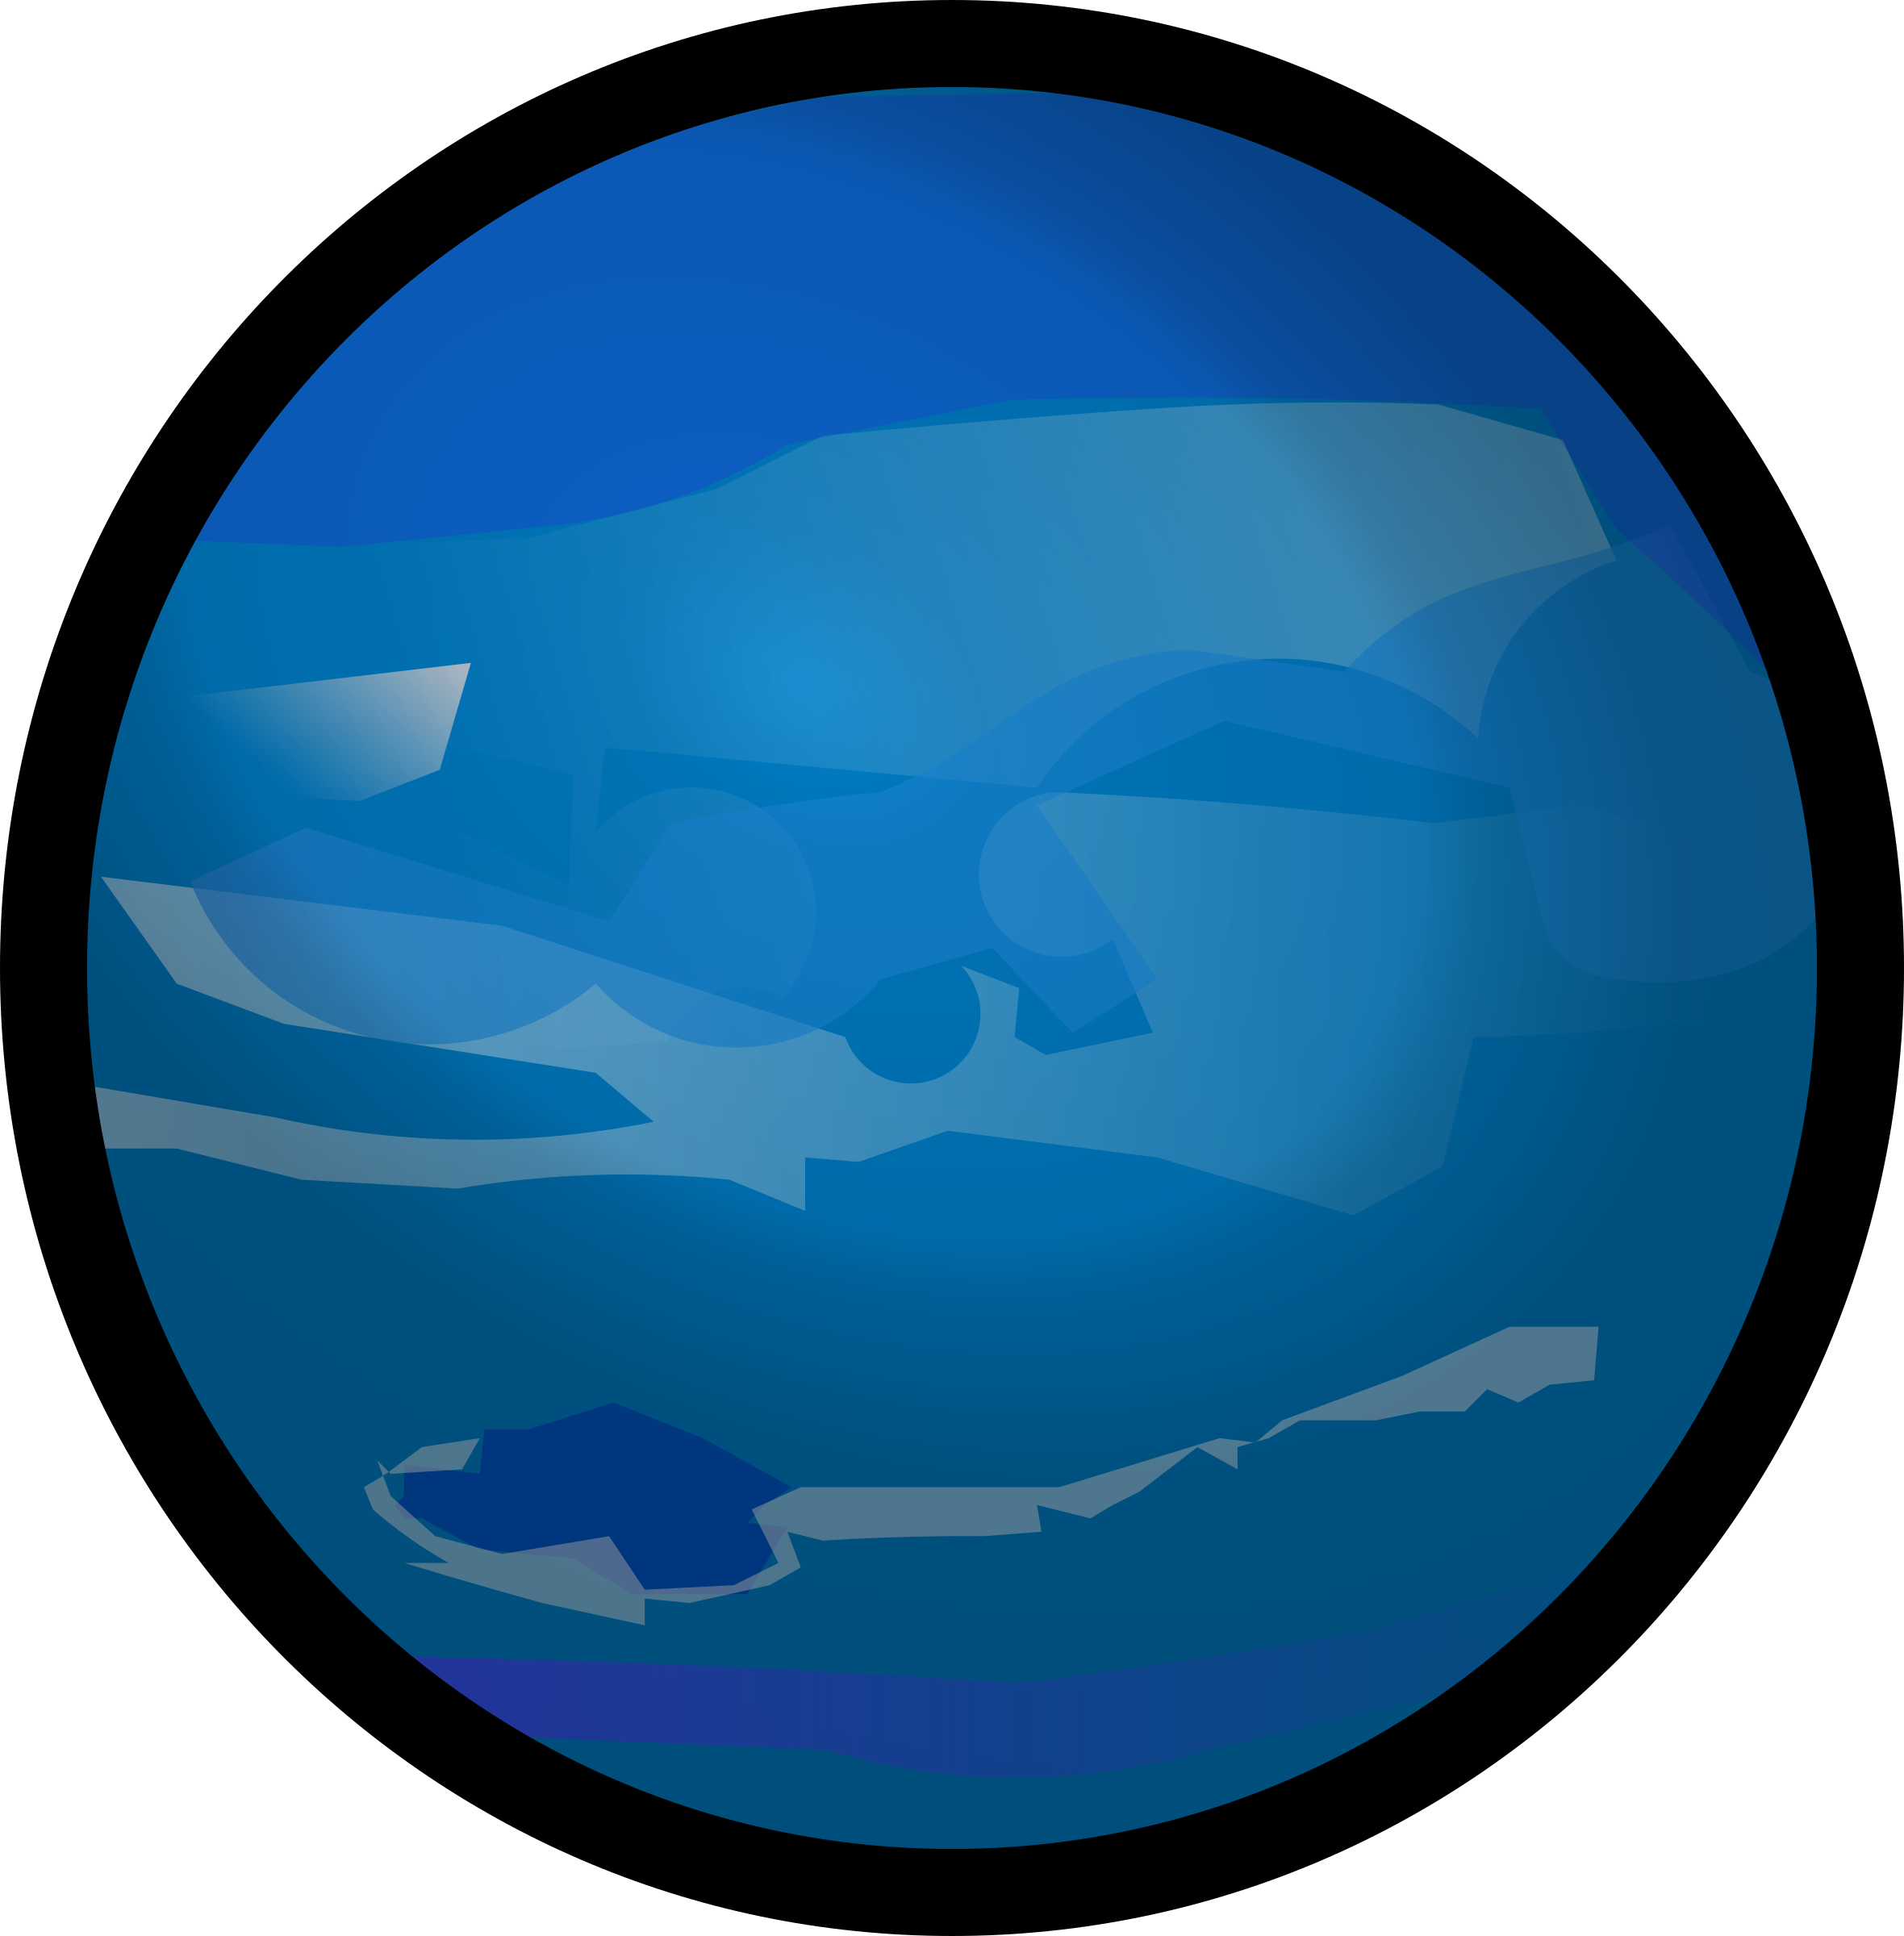 Neptune png. With outline icons free